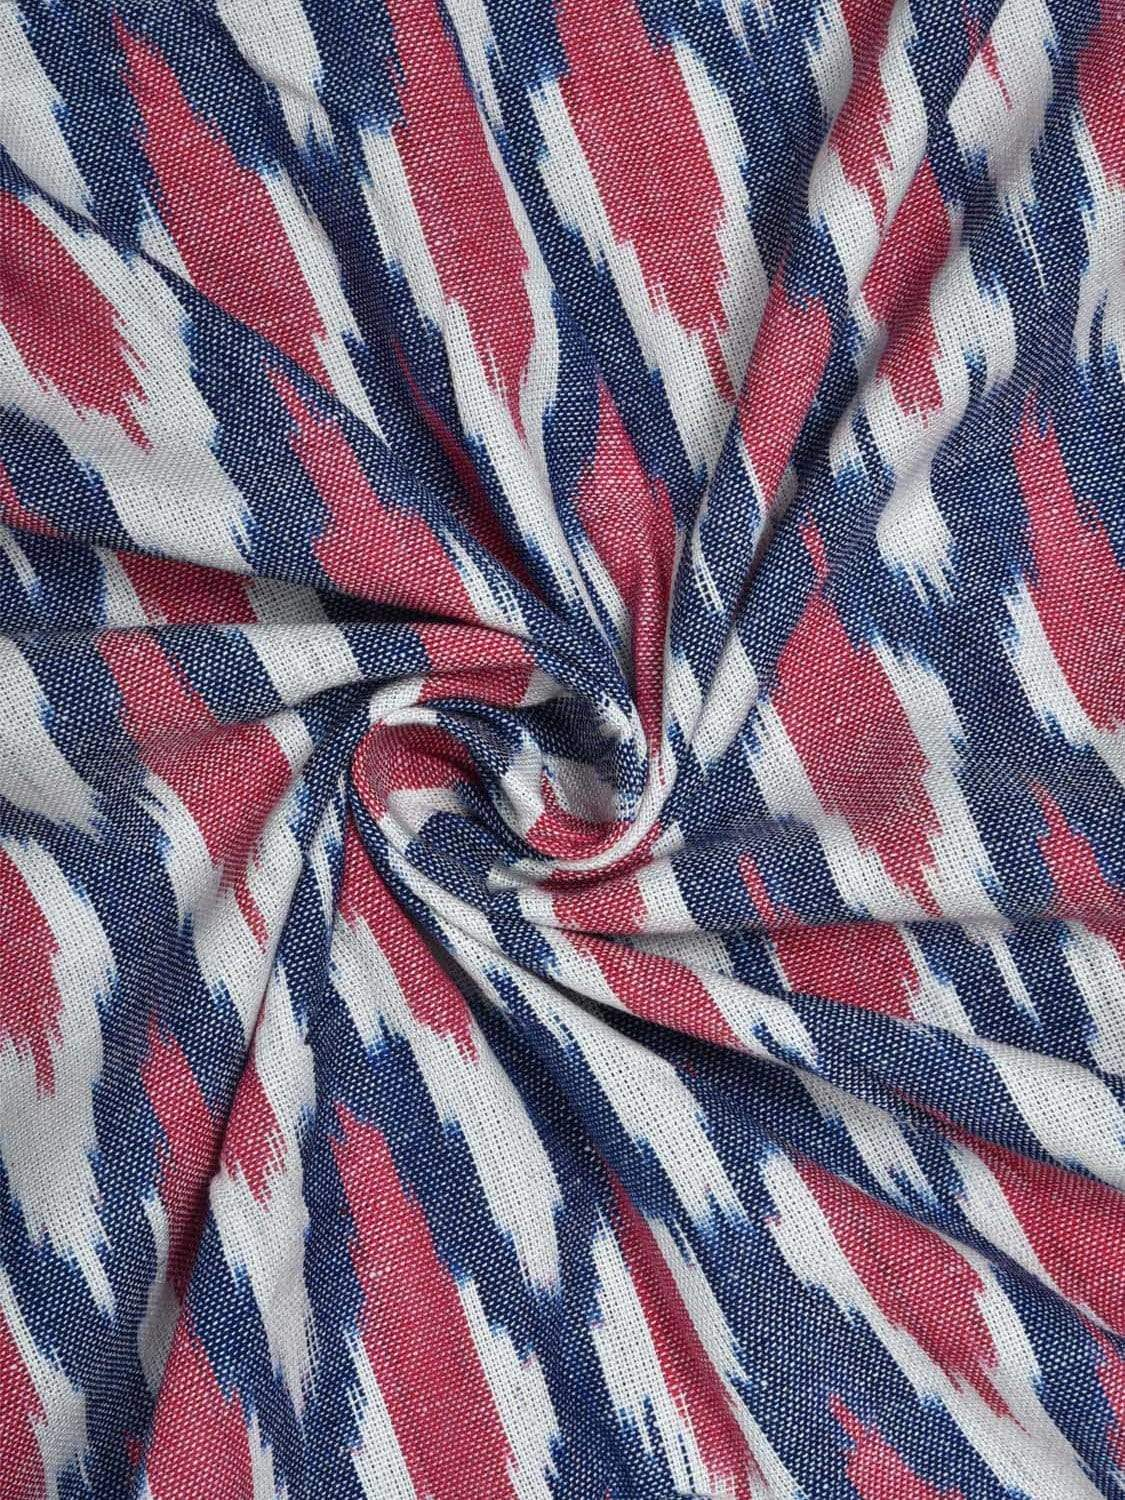 Red and Blue Pochampally Ikat Cotton Handloom Fabric Material with Grill Design f0146